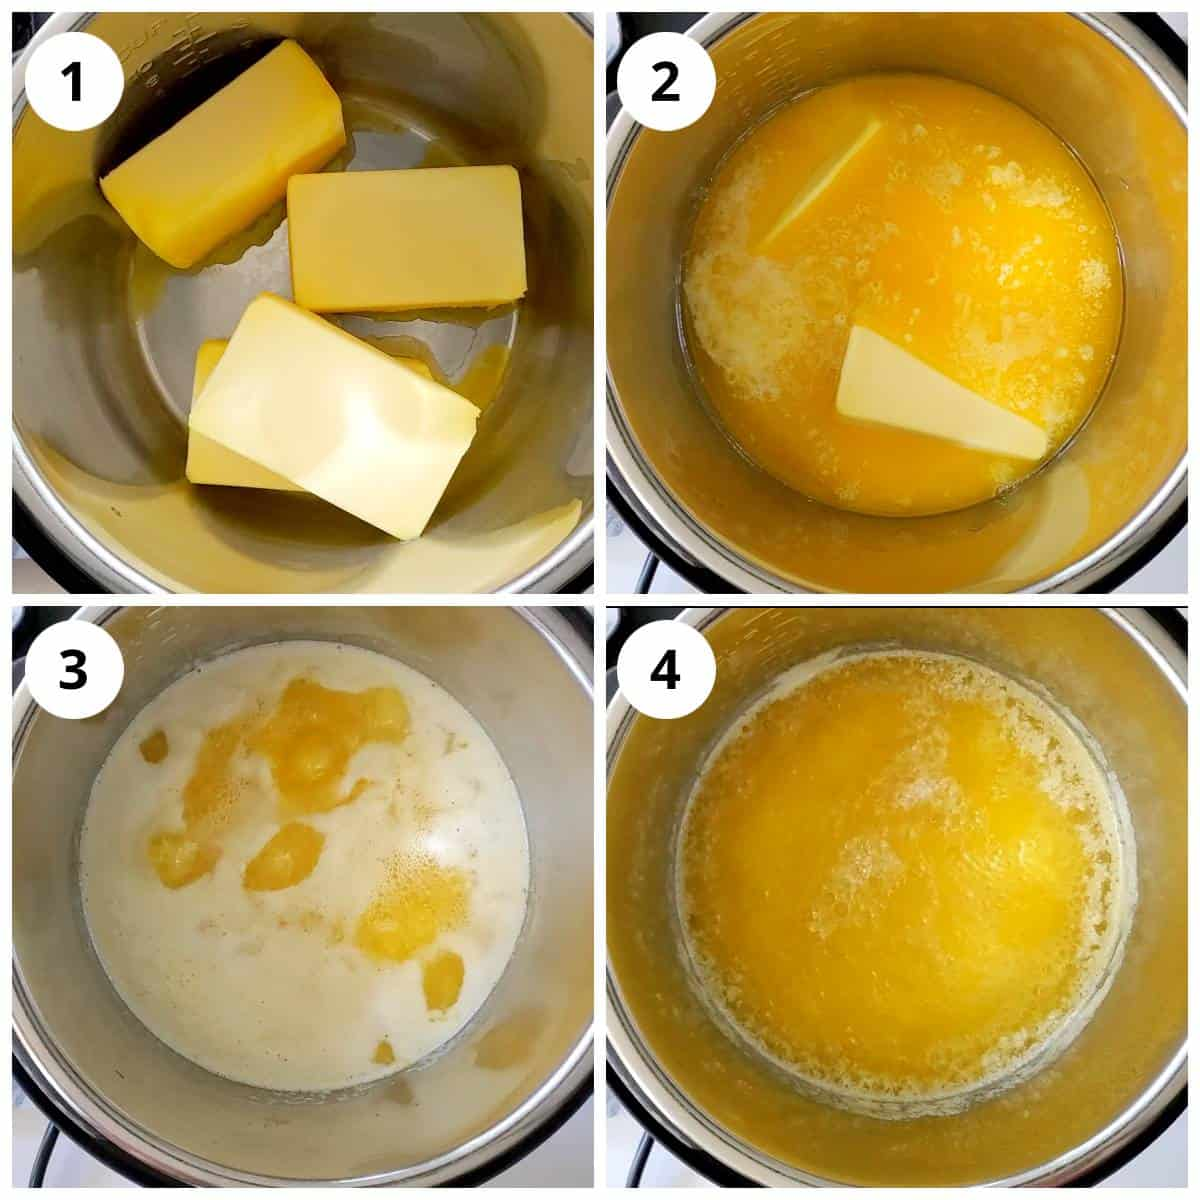 Steps for making ghee in Instant Pot by melting butter